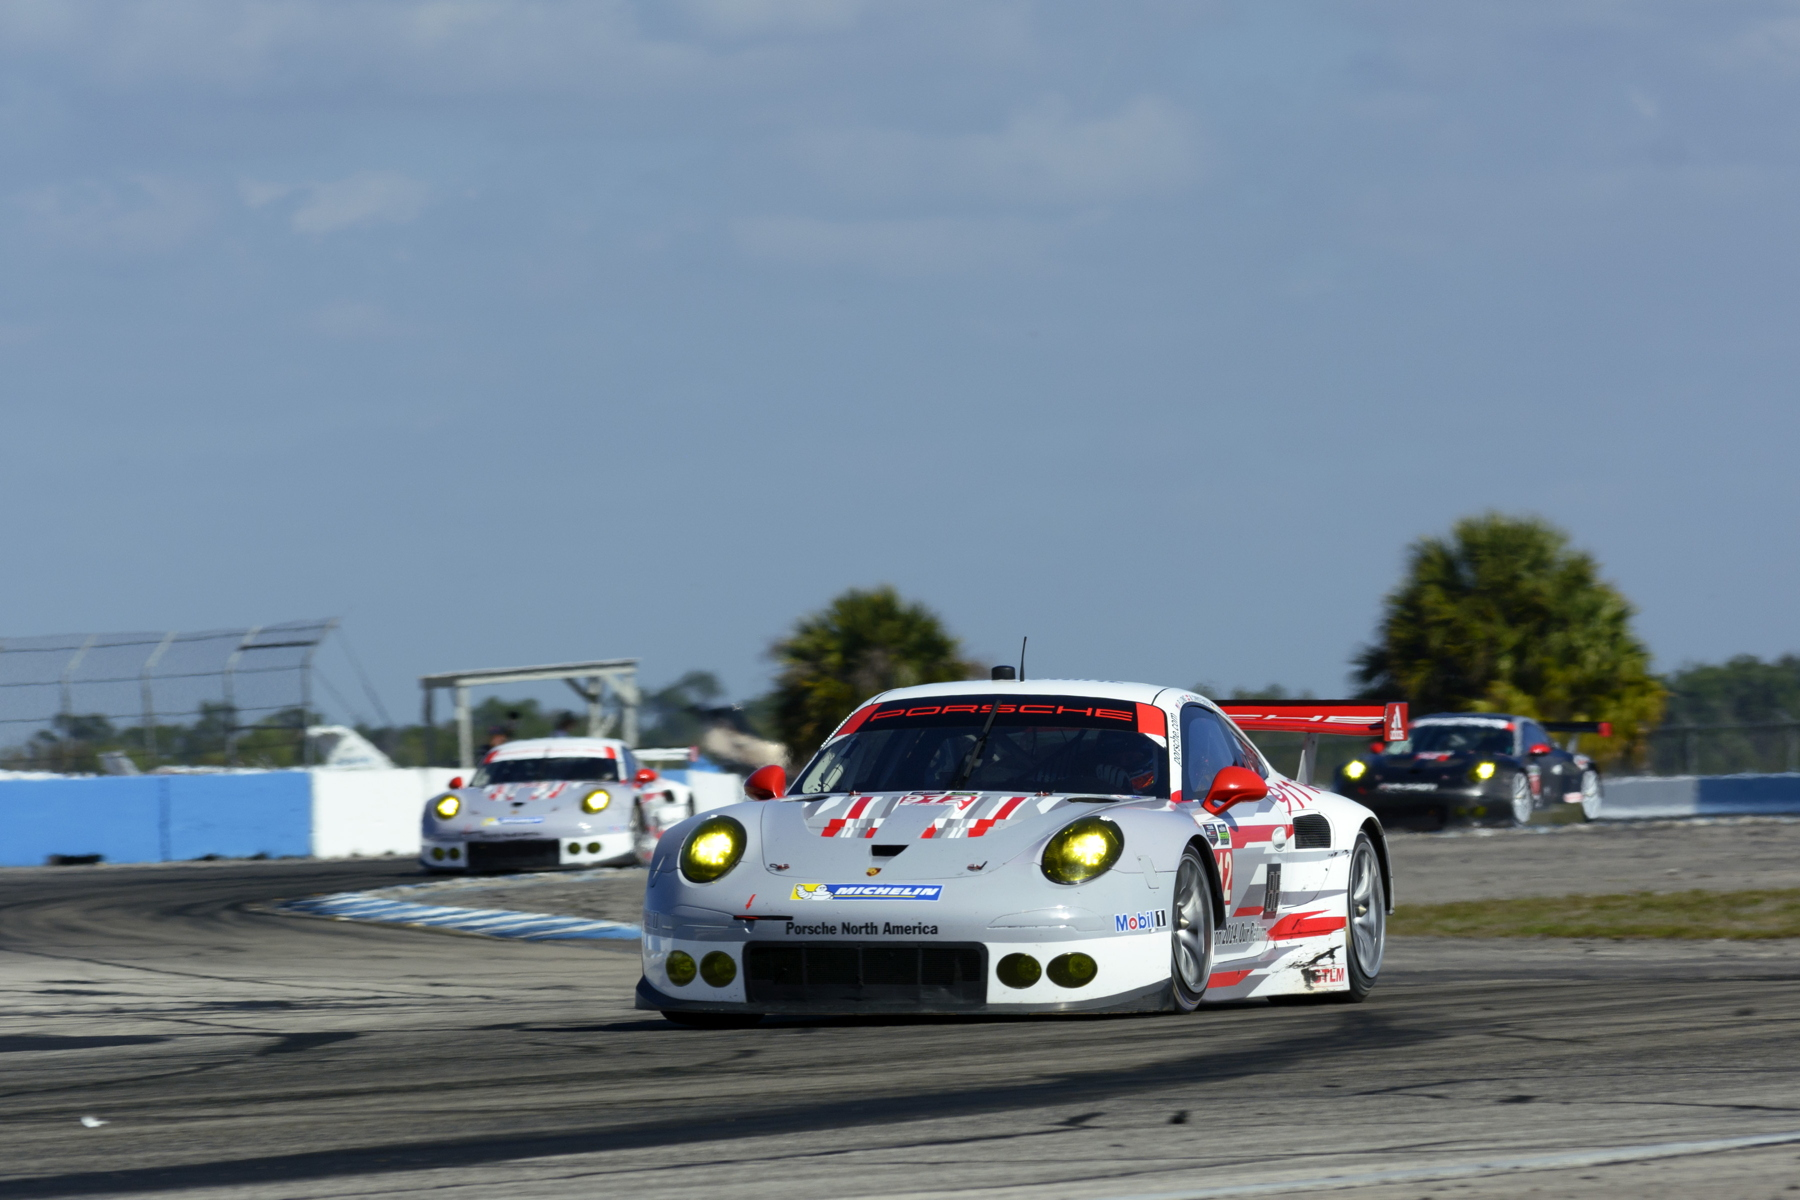 Porsche took a 1-2 in the Sebring Winter Tests in February.